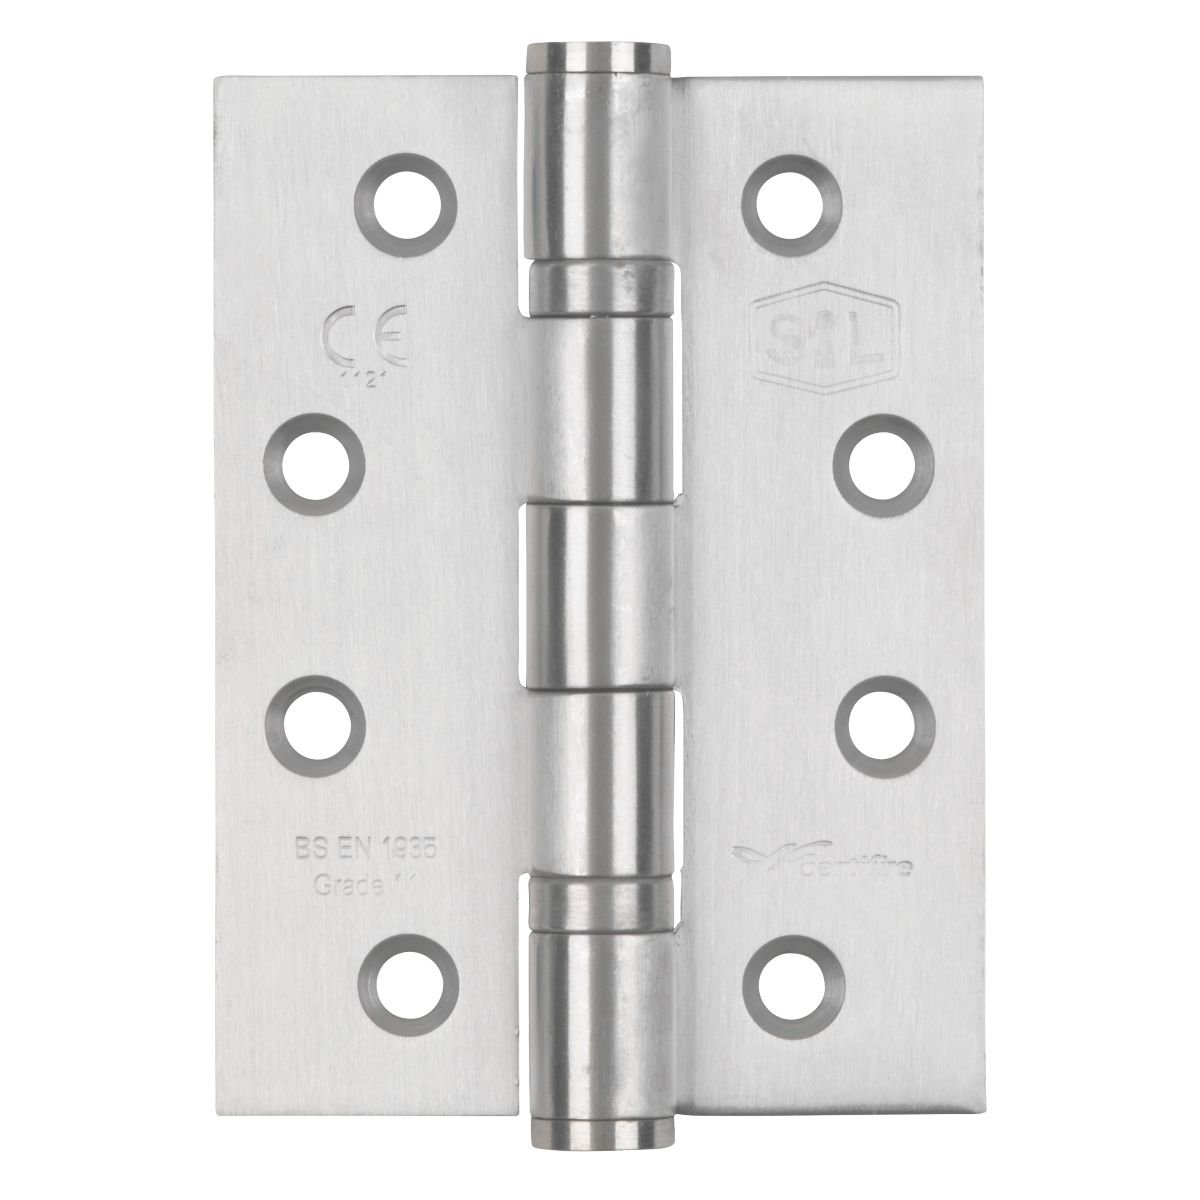 Smith & Locke Grade 11 Fire Door Ball Bearing Hinges Satin Stainless Steel 102 x 76mm 3 Pack